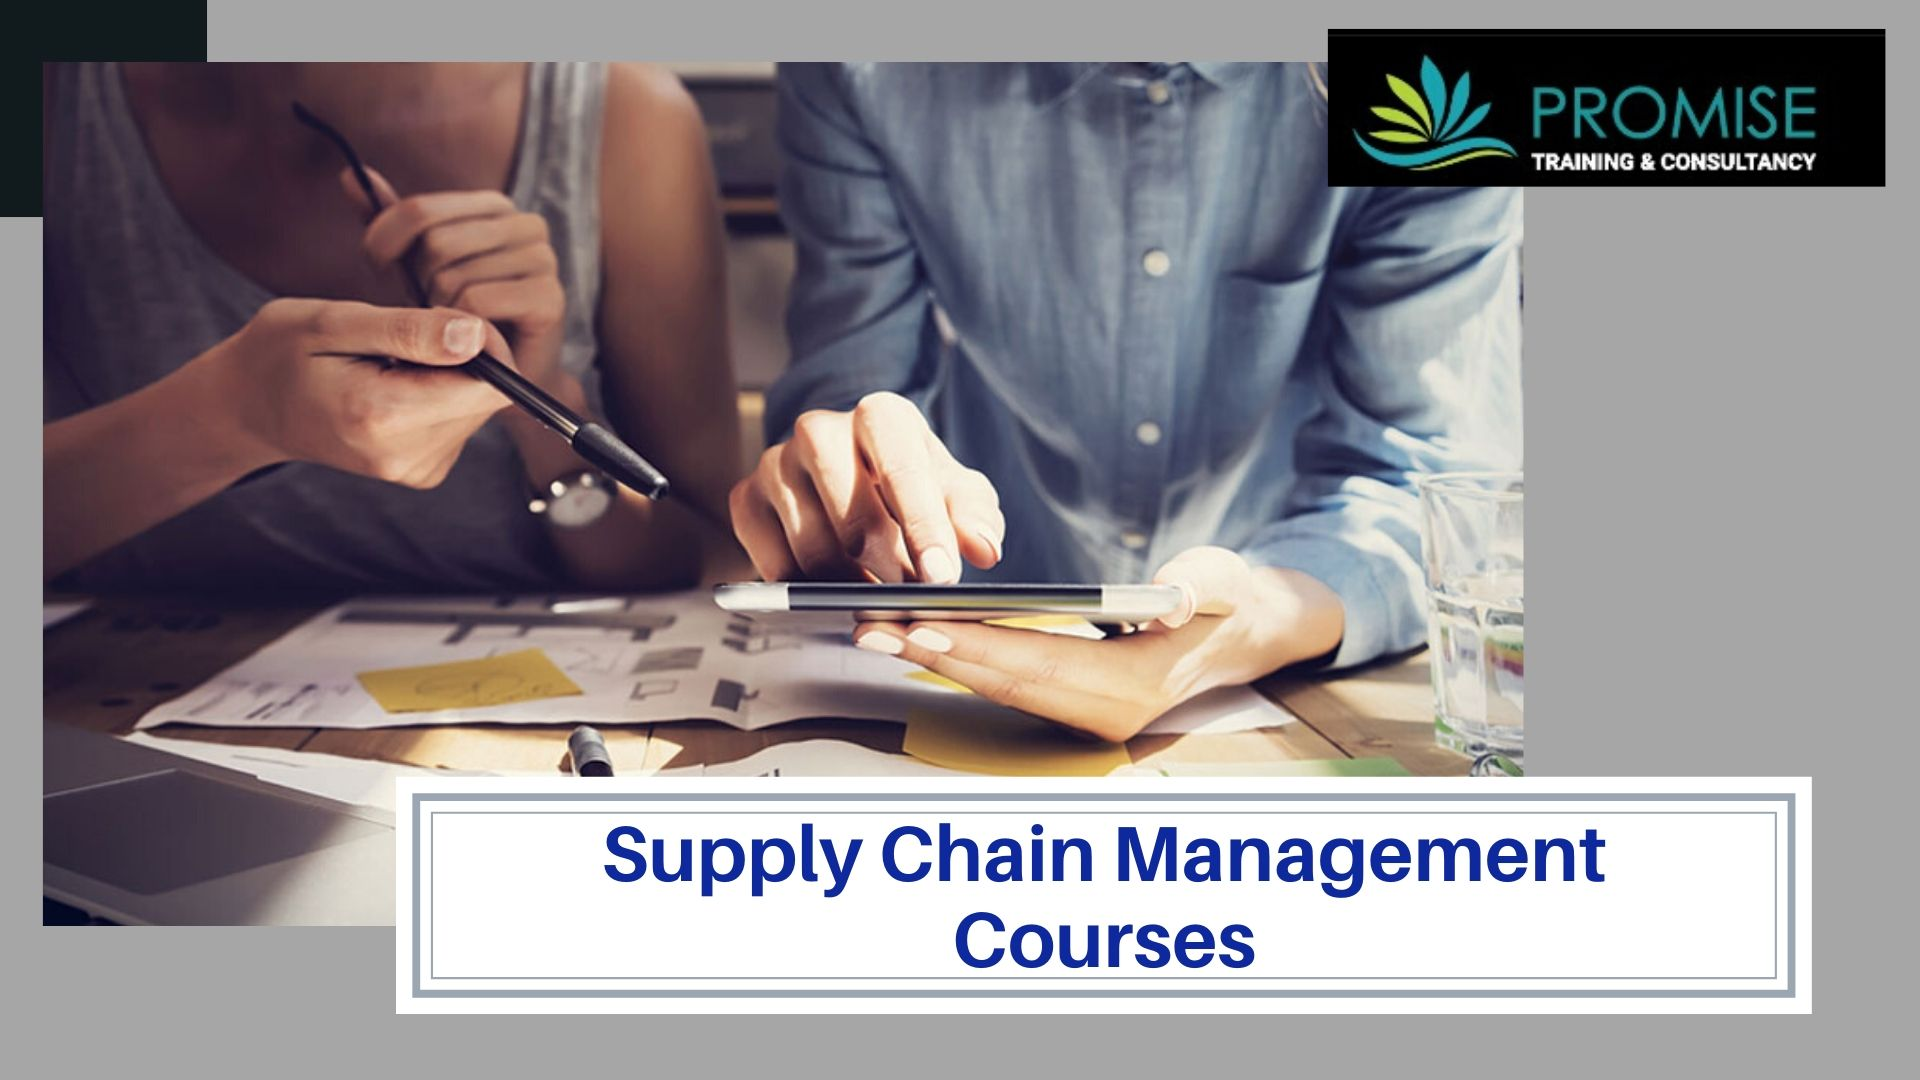 Supply Chain Management Courses in Dubai